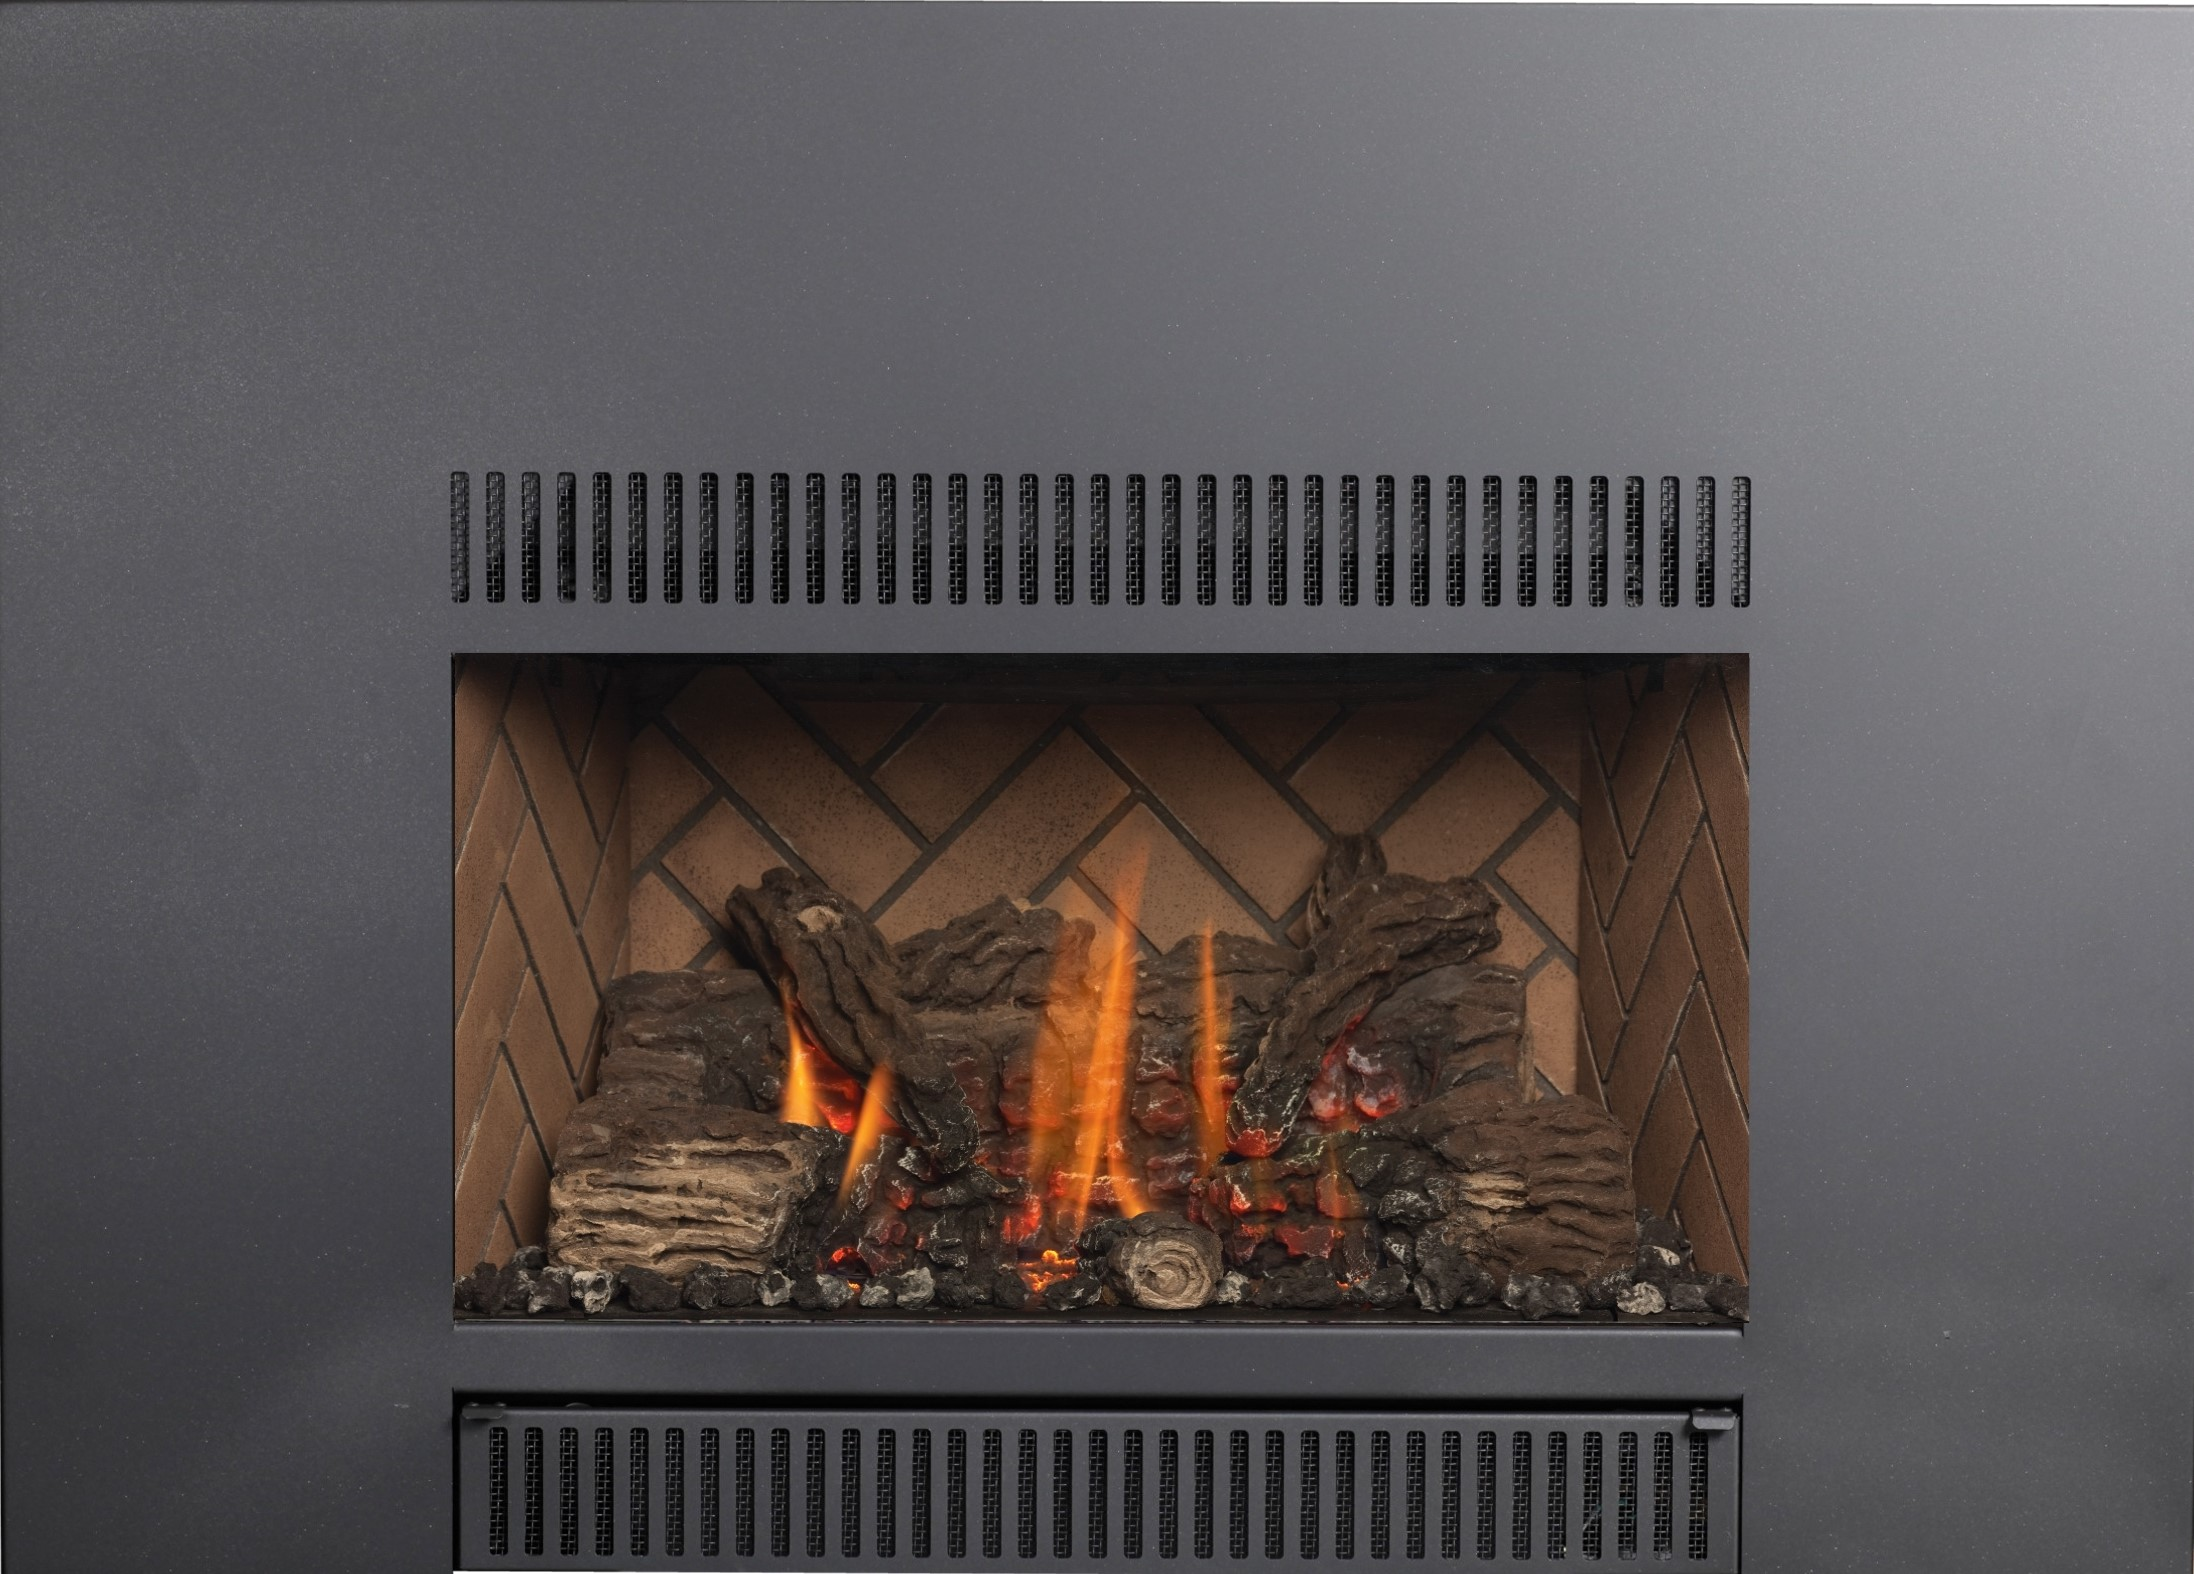 Image of a 31 DVI FireplaceX